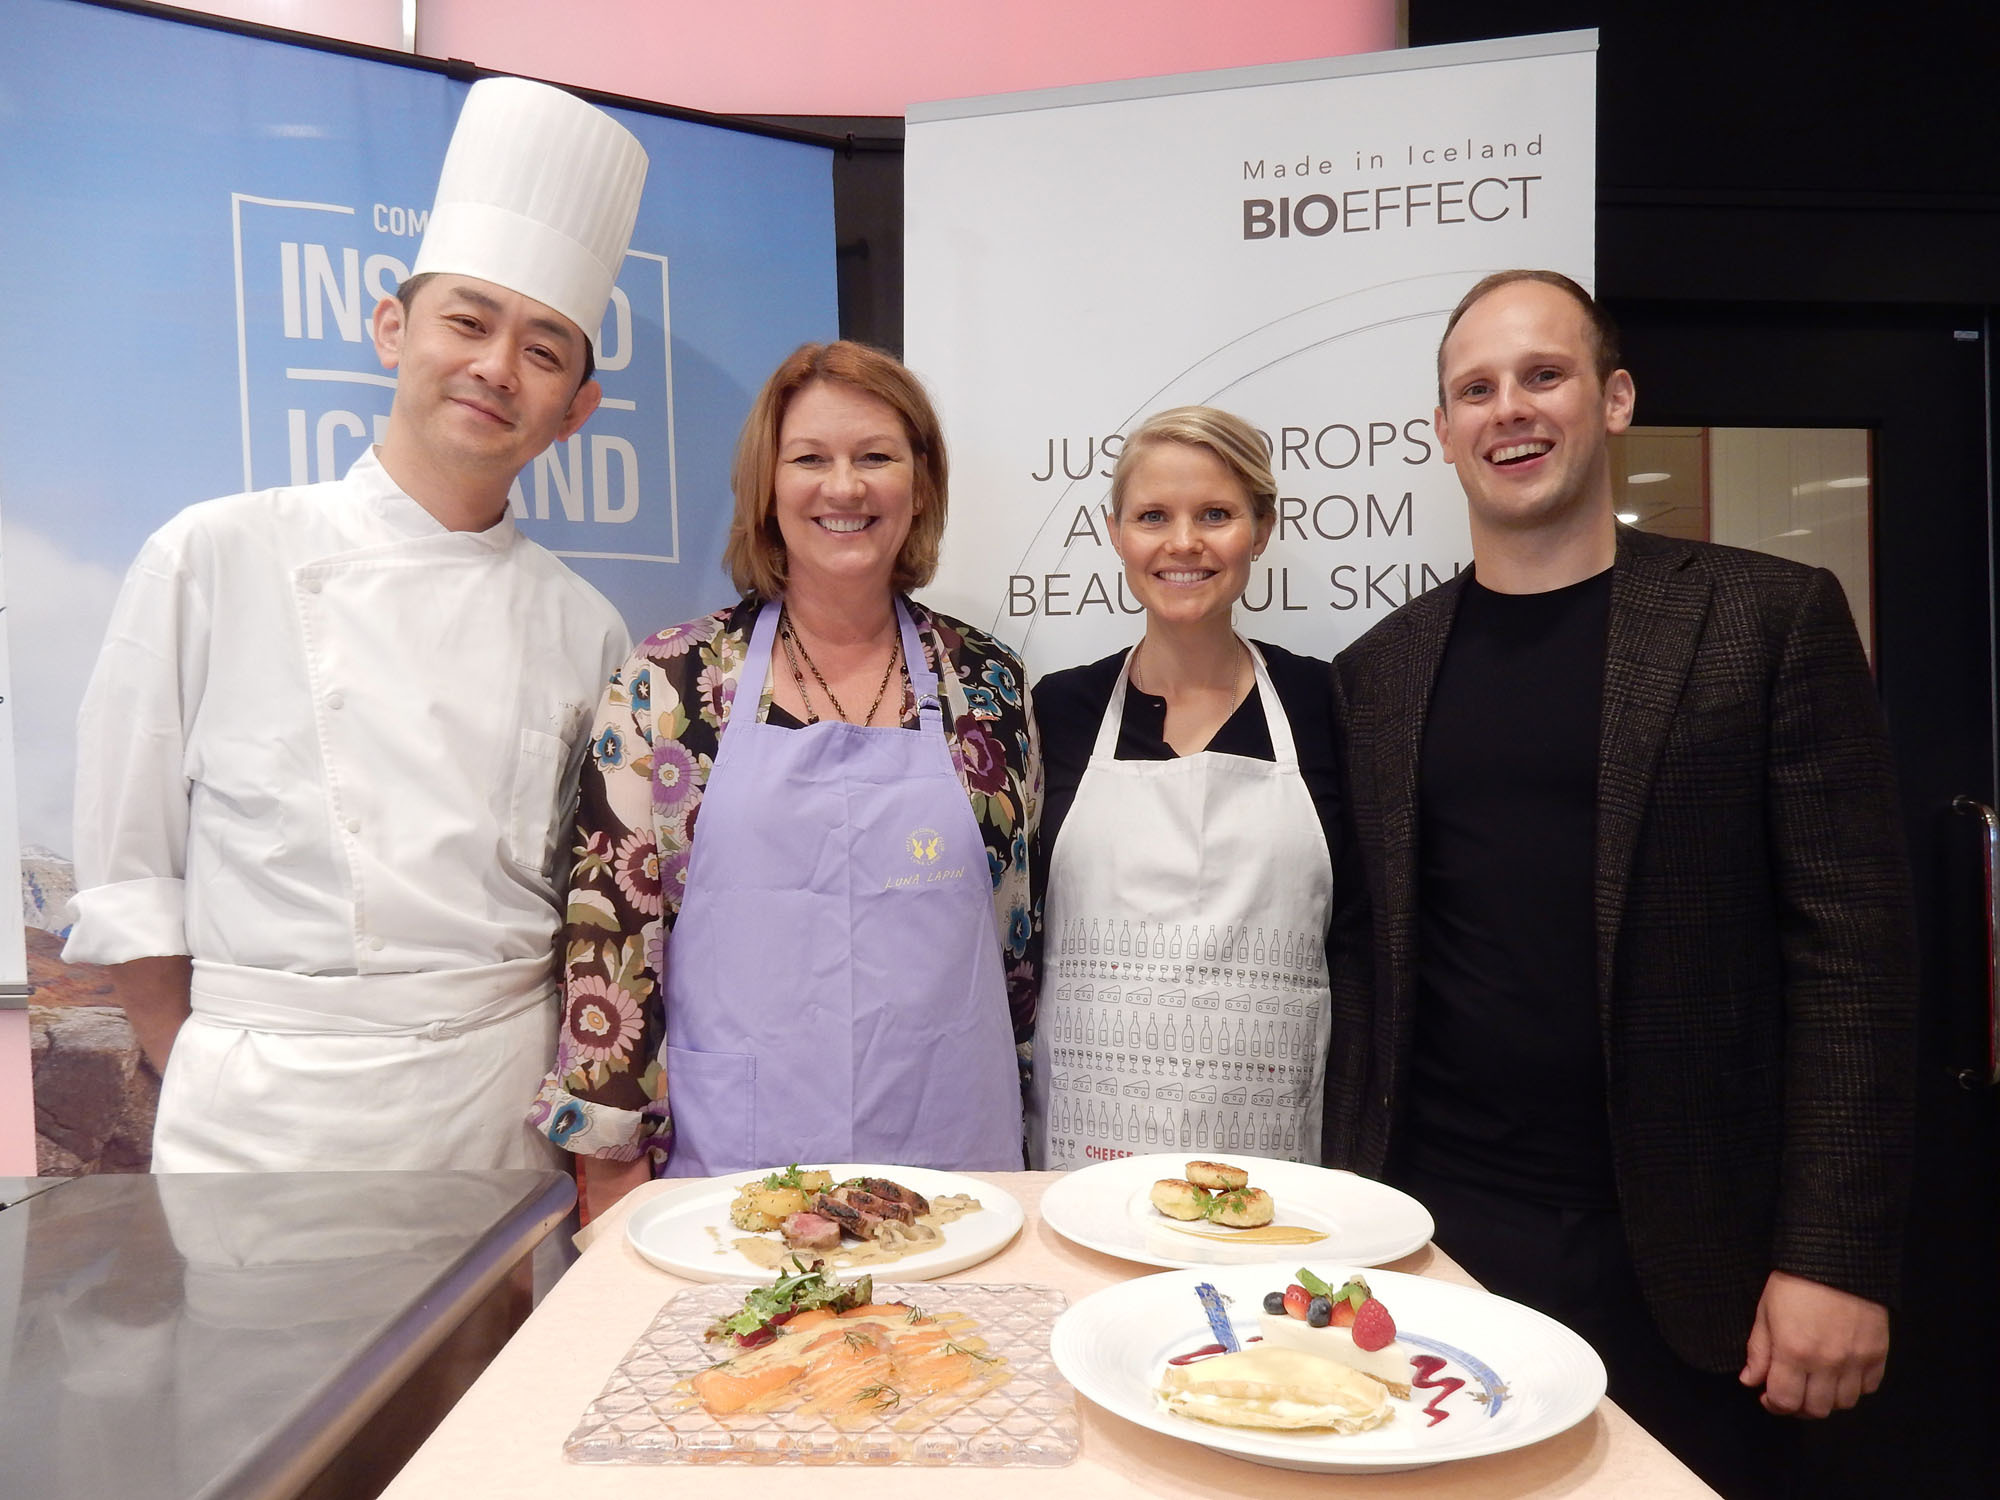 The wife of the ambassador of Iceland, Gudrun Solonsdottir (second from left) poses with the Chairman of Icelandic Chamber of Commerce in Japan and CEO of Takanawa Cosmetics Bolli Thoroddsen (right), his wife Asta Fjeldsted (third from left) and chef Yusuke Odaka during an Icelandic culinary and beauty lesson at Hattori Nutrition College on Sept. 3. | MAKI YAMAMOTO-ARAKAWA